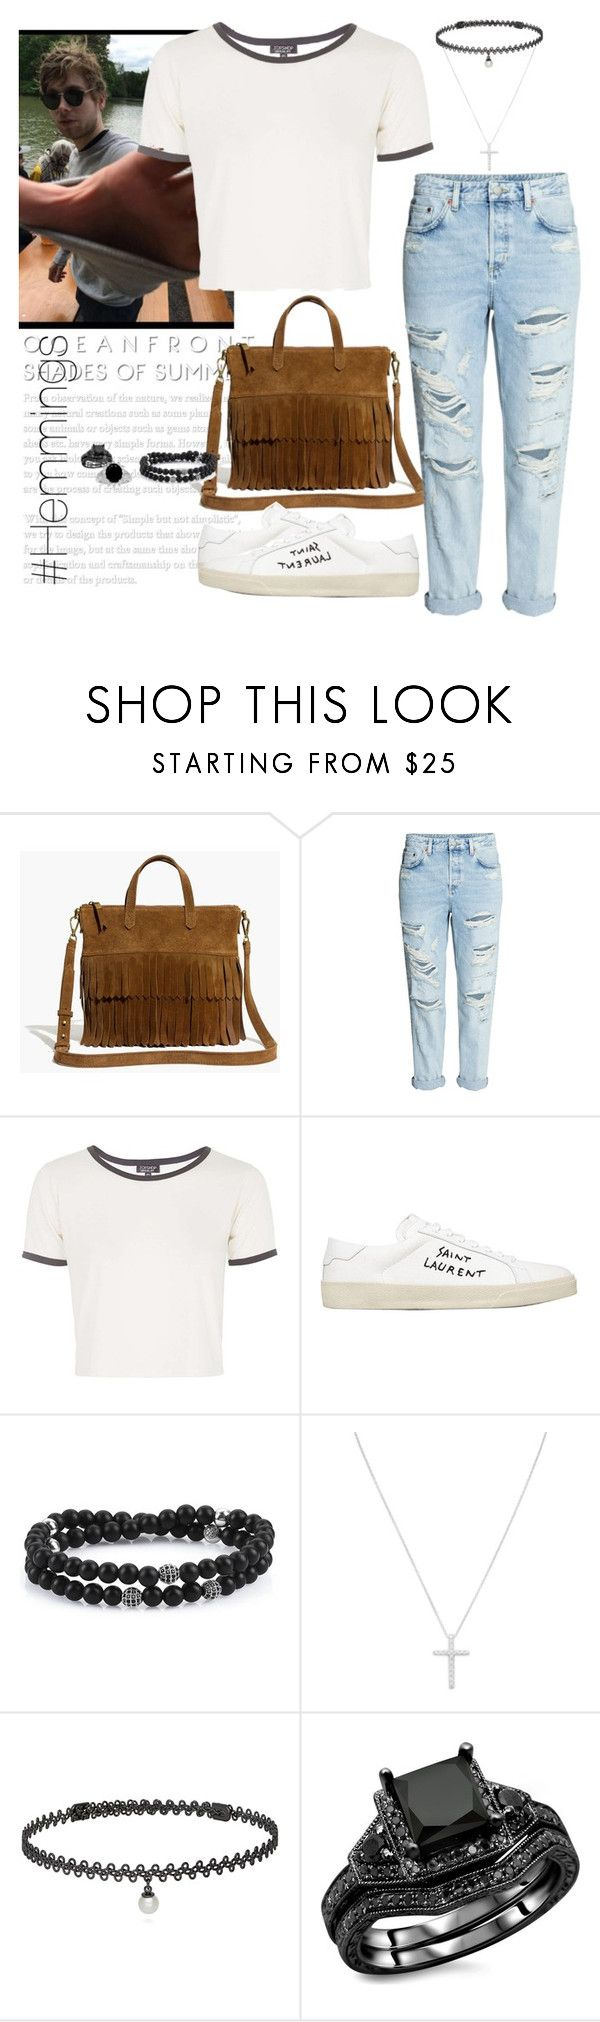 """""""Hemmings girl"""" by victoriashada ❤ liked on Polyvore featuring Madewell, Topshop, Yves Saint Laurent, BERRICLE, 5sos, girlfriend and lukehemmings"""